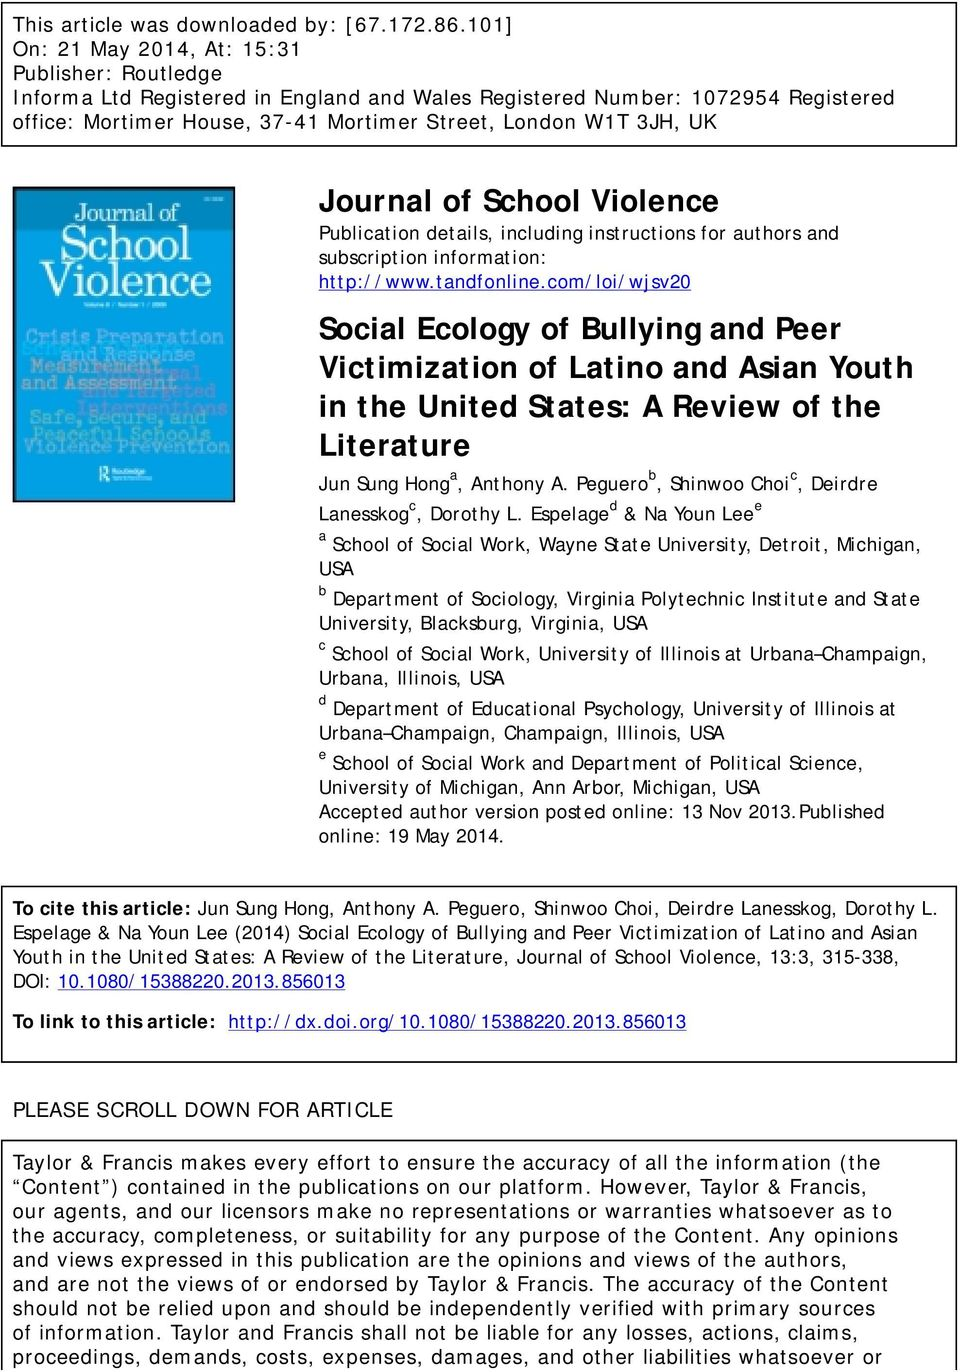 UK Journal of School Violence Publication details, including instructions for authors and subscription information: http://www.tandfonline.